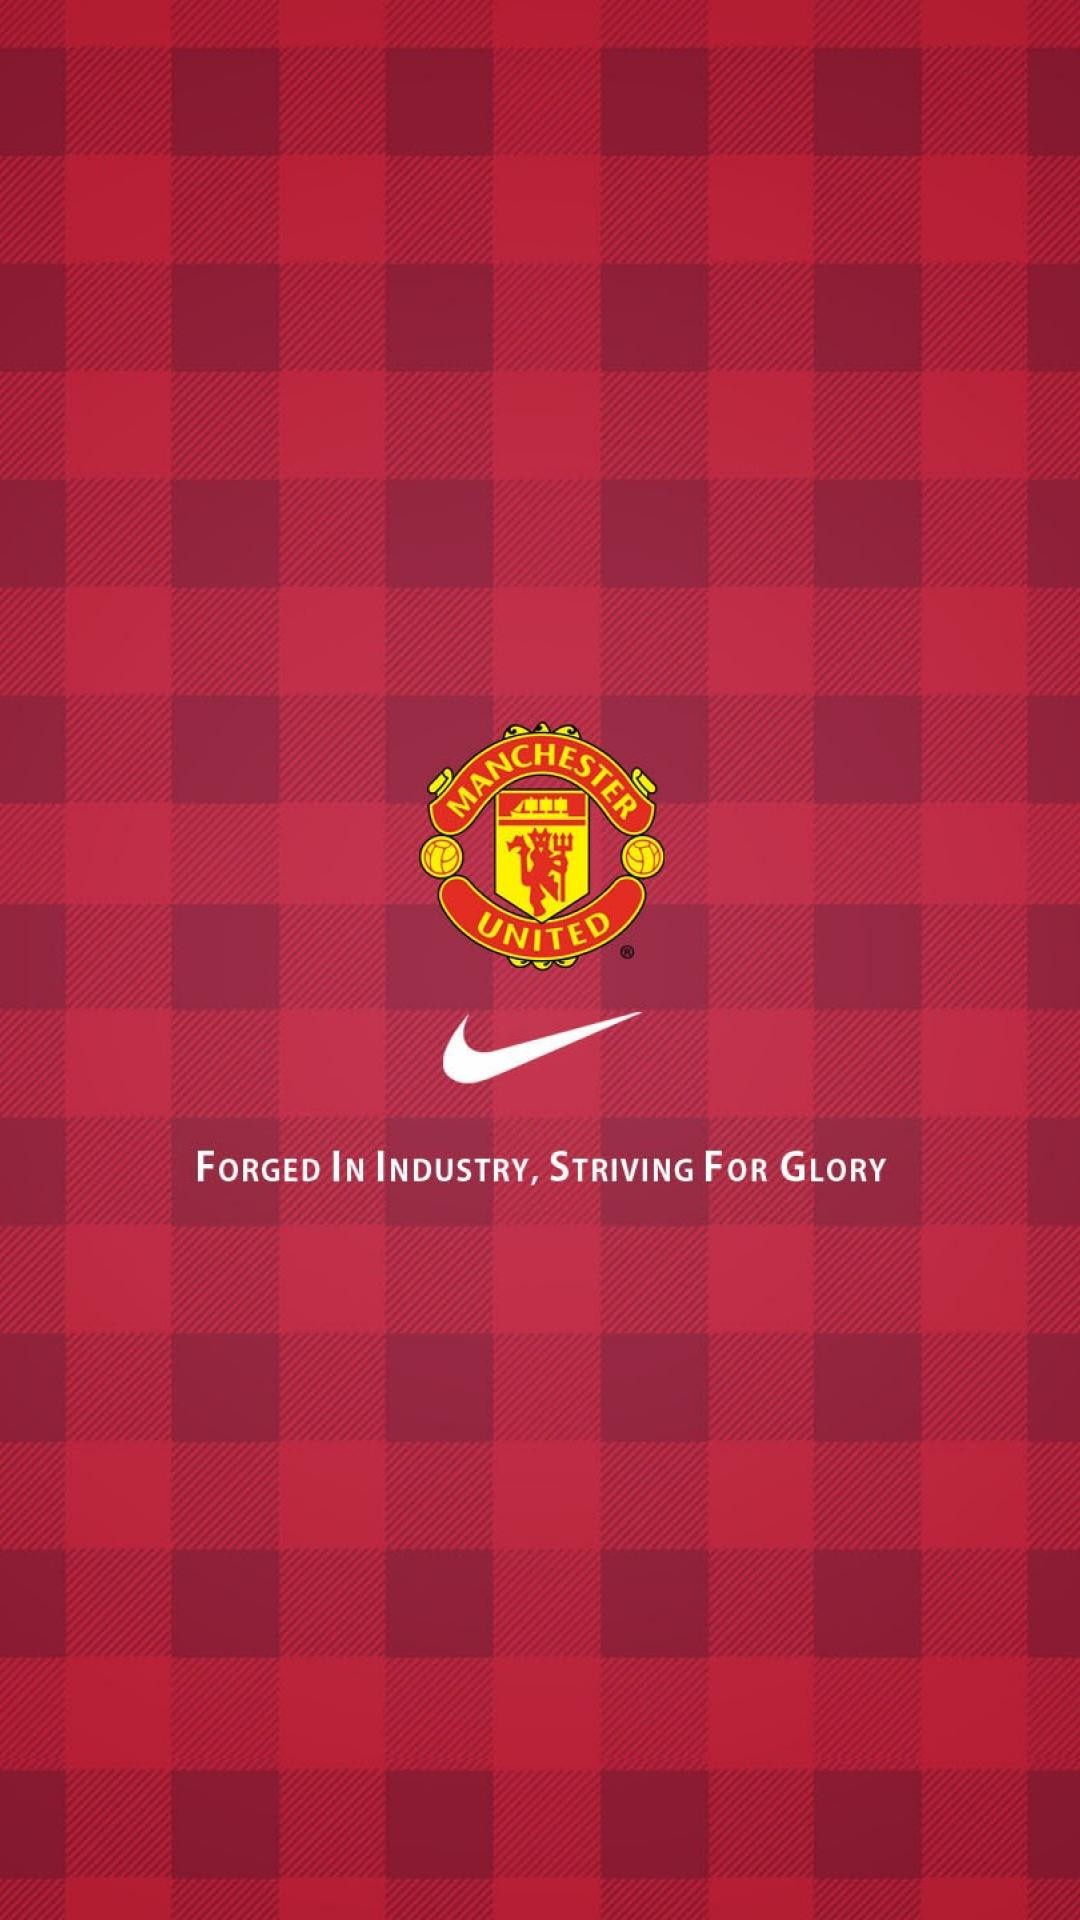 1080x1920 Manchester United Wallpaper Note 2 | Simple Image Gallery